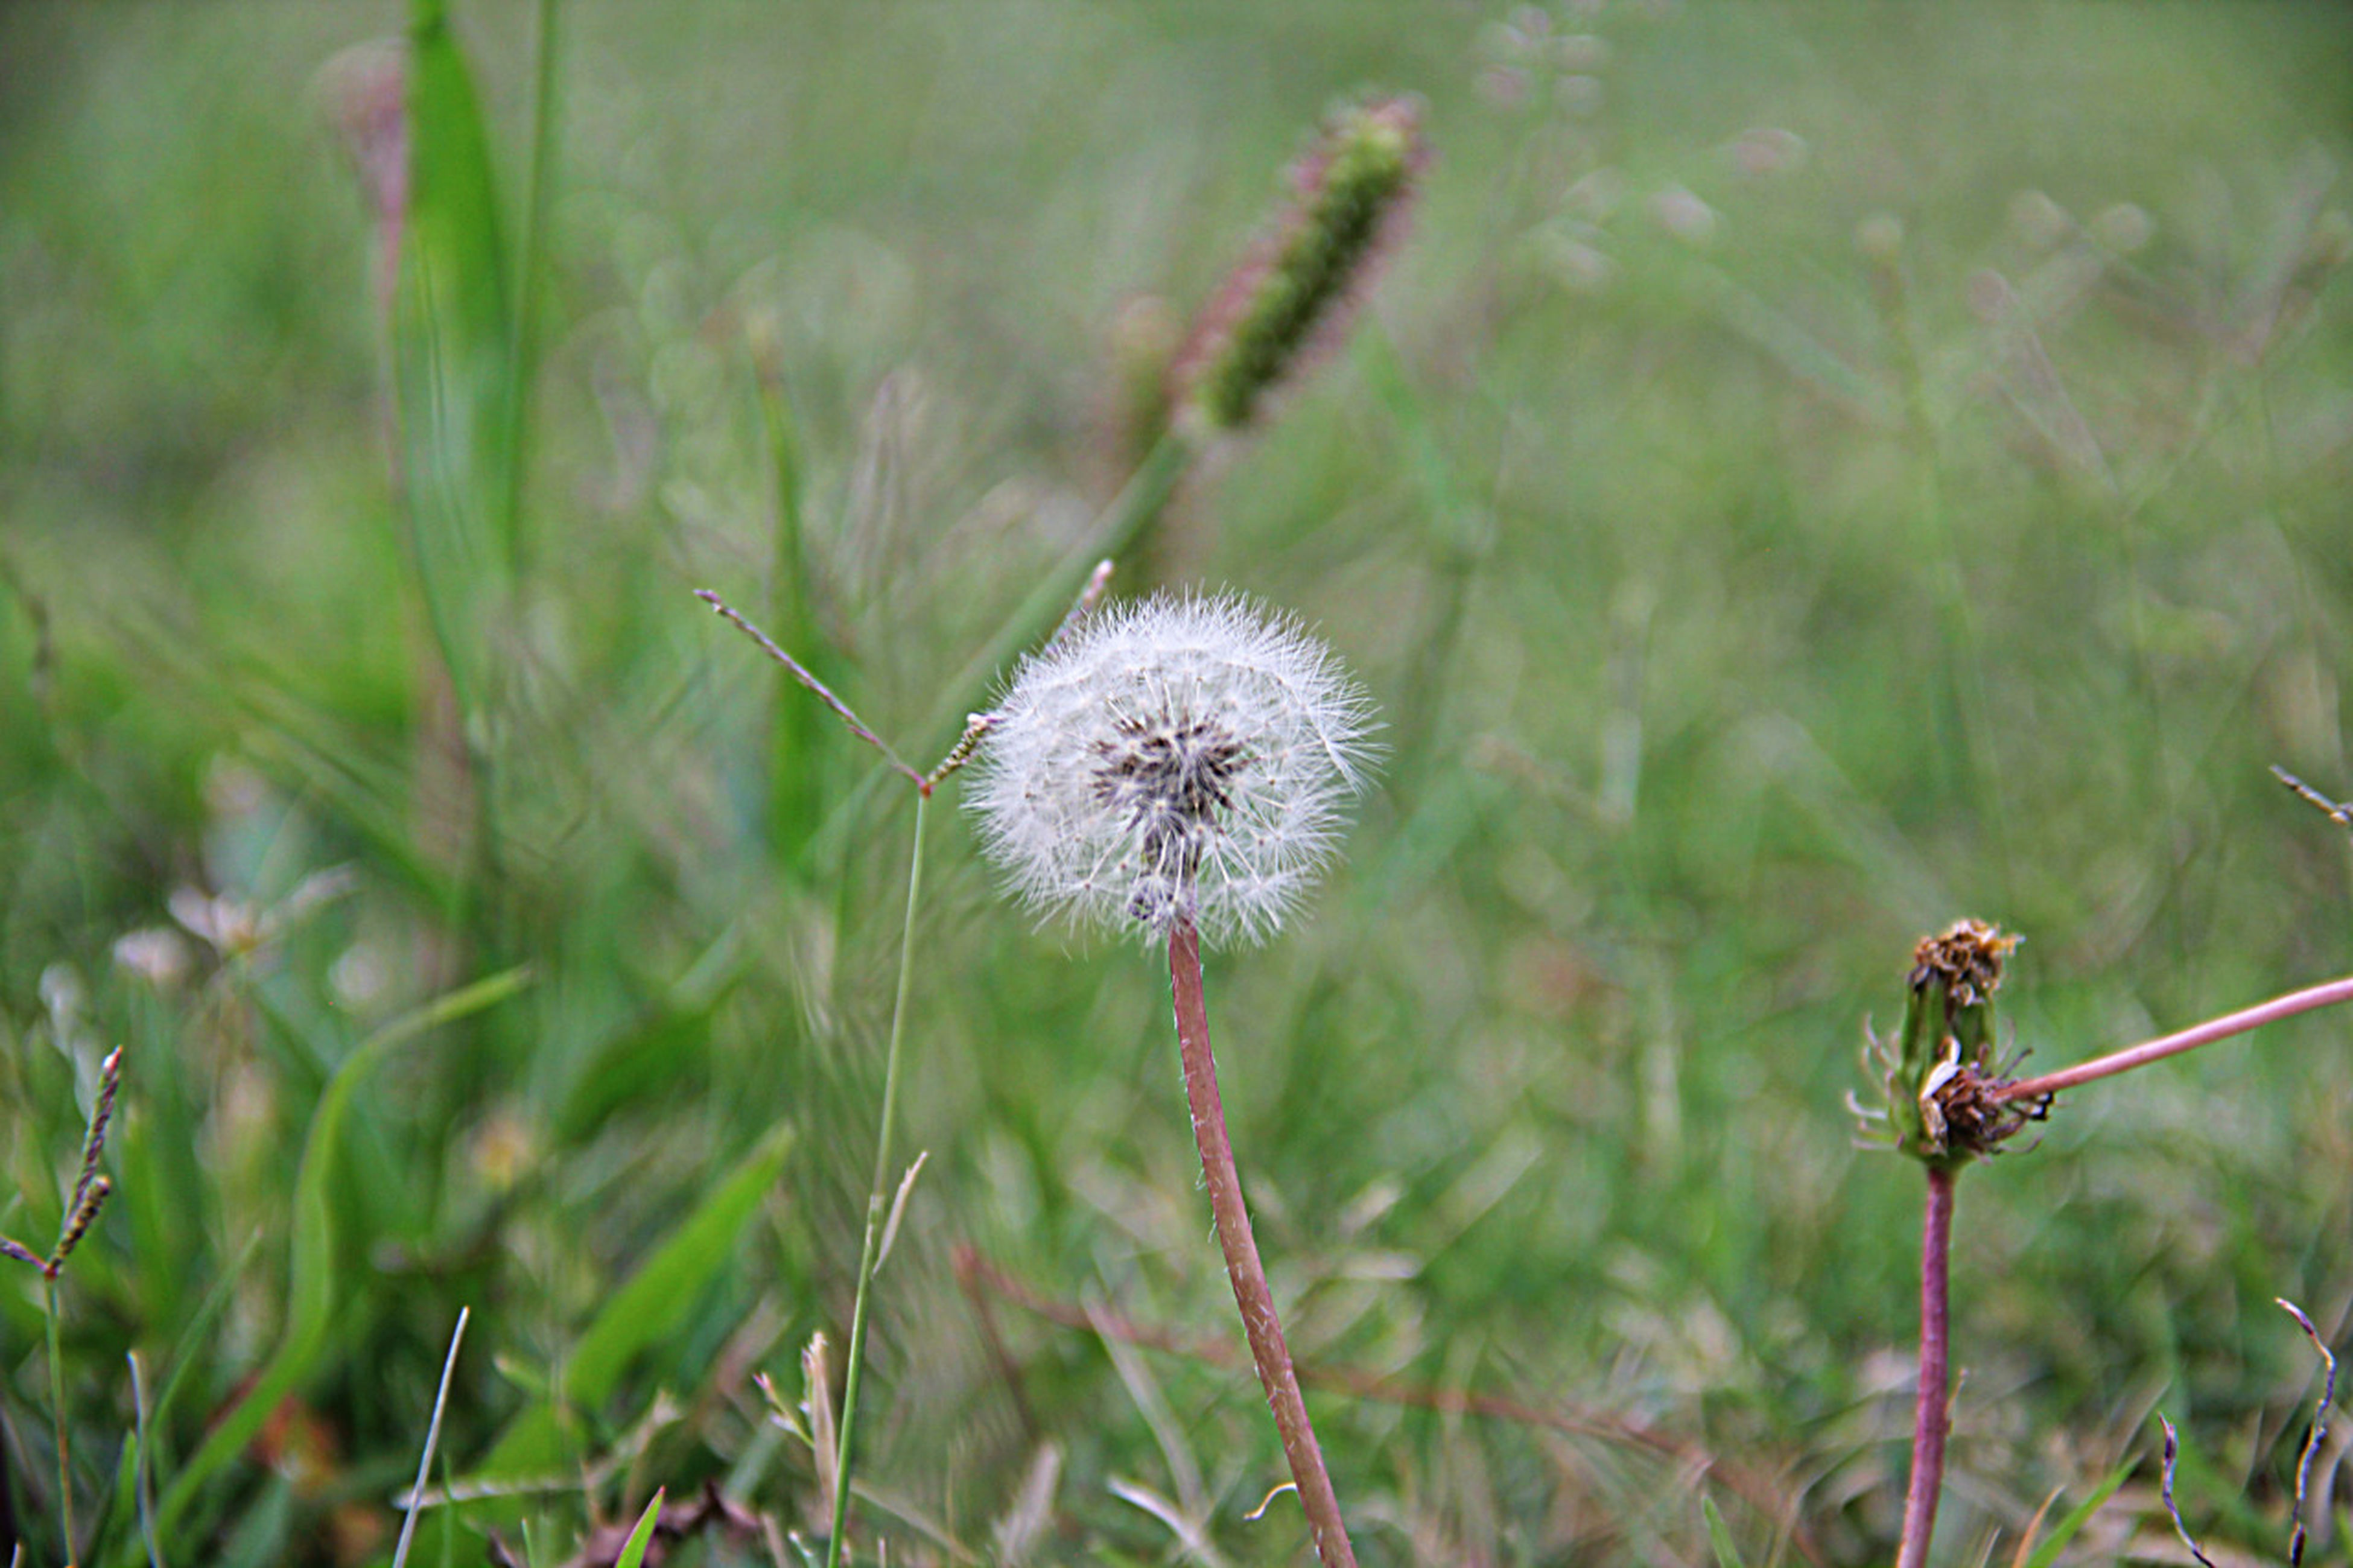 flower, dandelion, fragility, growth, freshness, focus on foreground, flower head, close-up, beauty in nature, plant, nature, stem, wildflower, field, single flower, selective focus, uncultivated, day, grass, outdoors